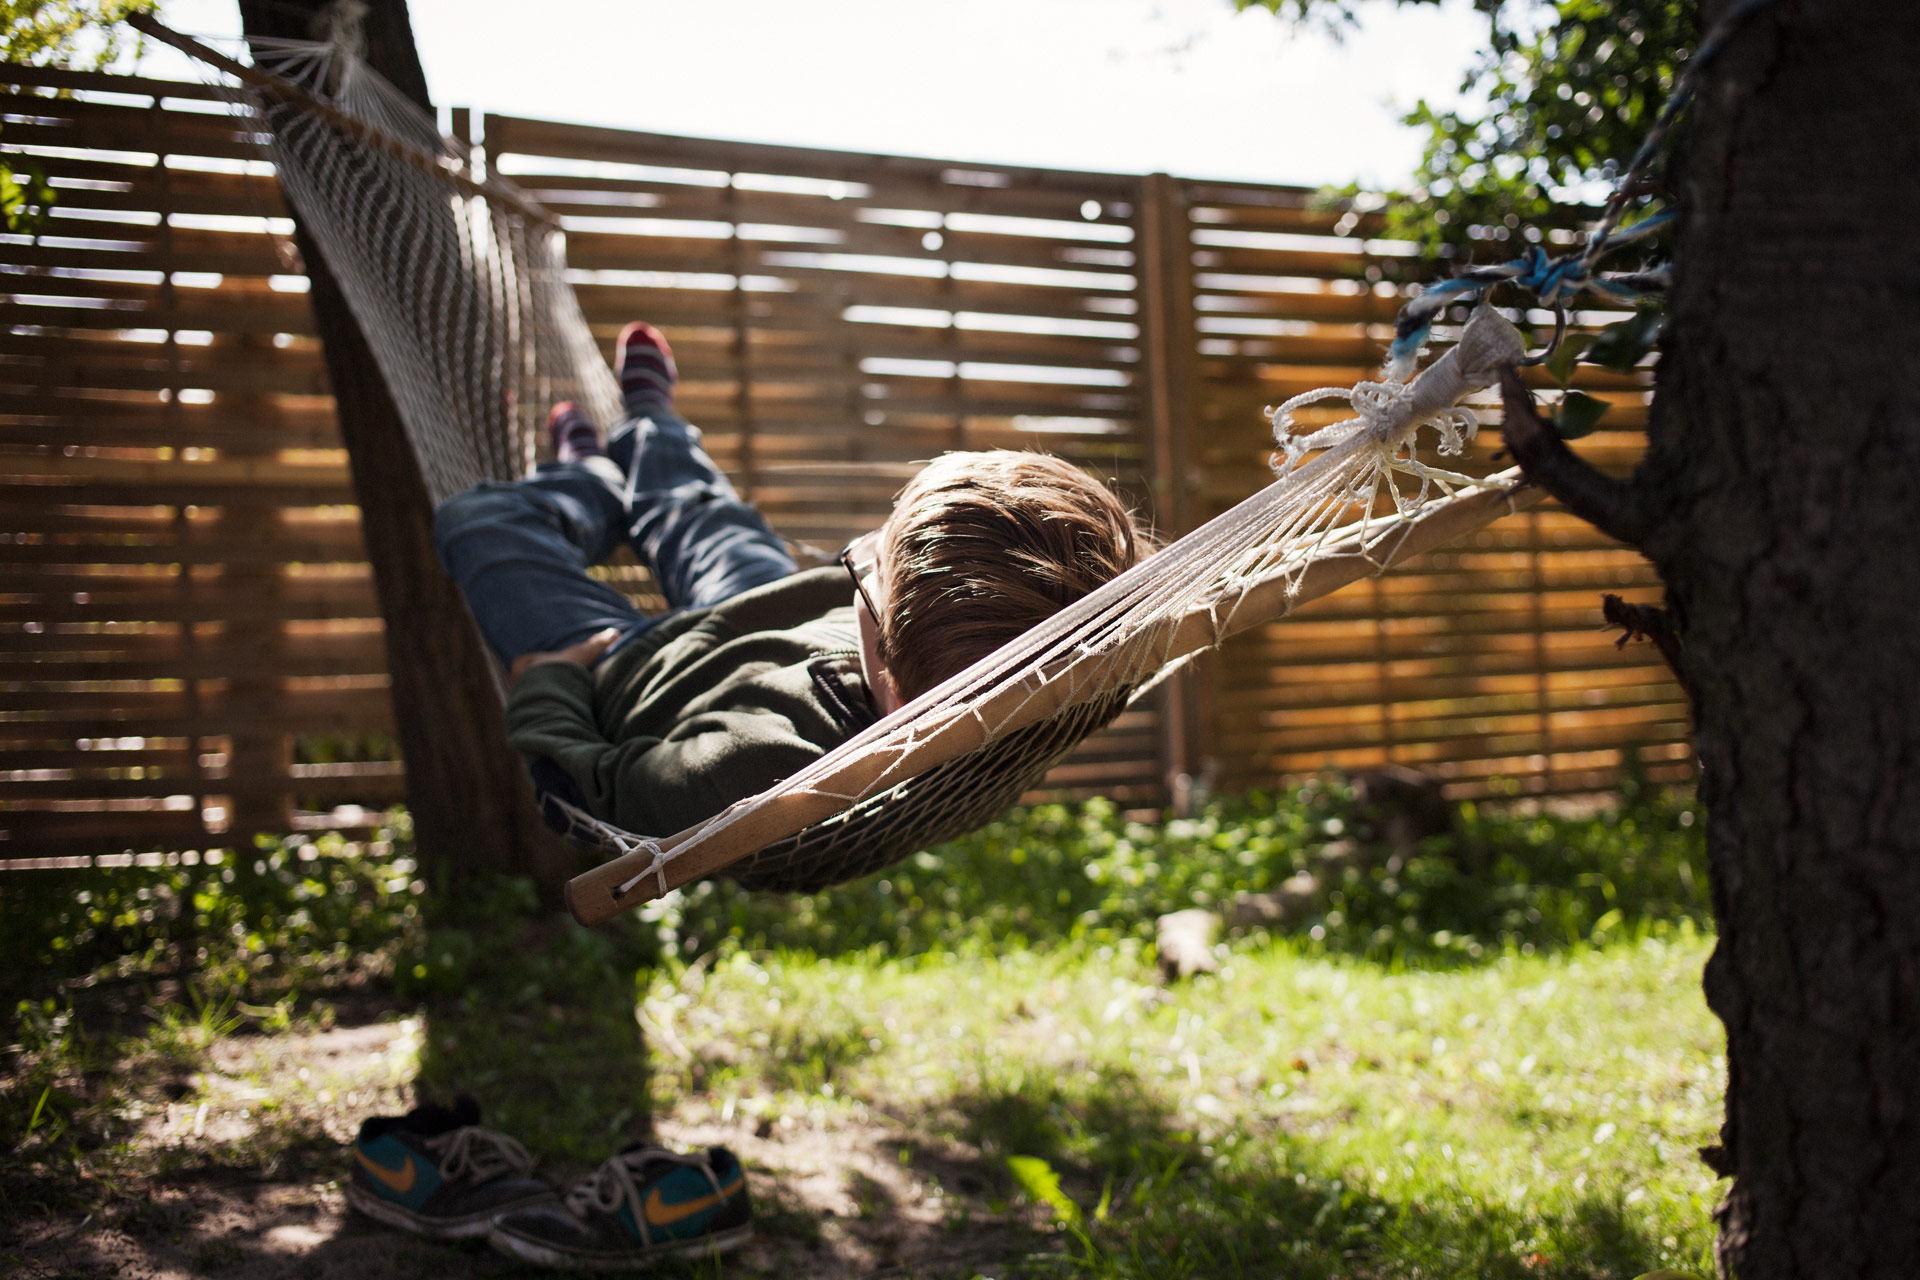 timo-stammberger-photography-fotografie-hammock-harmony-boy-relaxing-sunny-garden